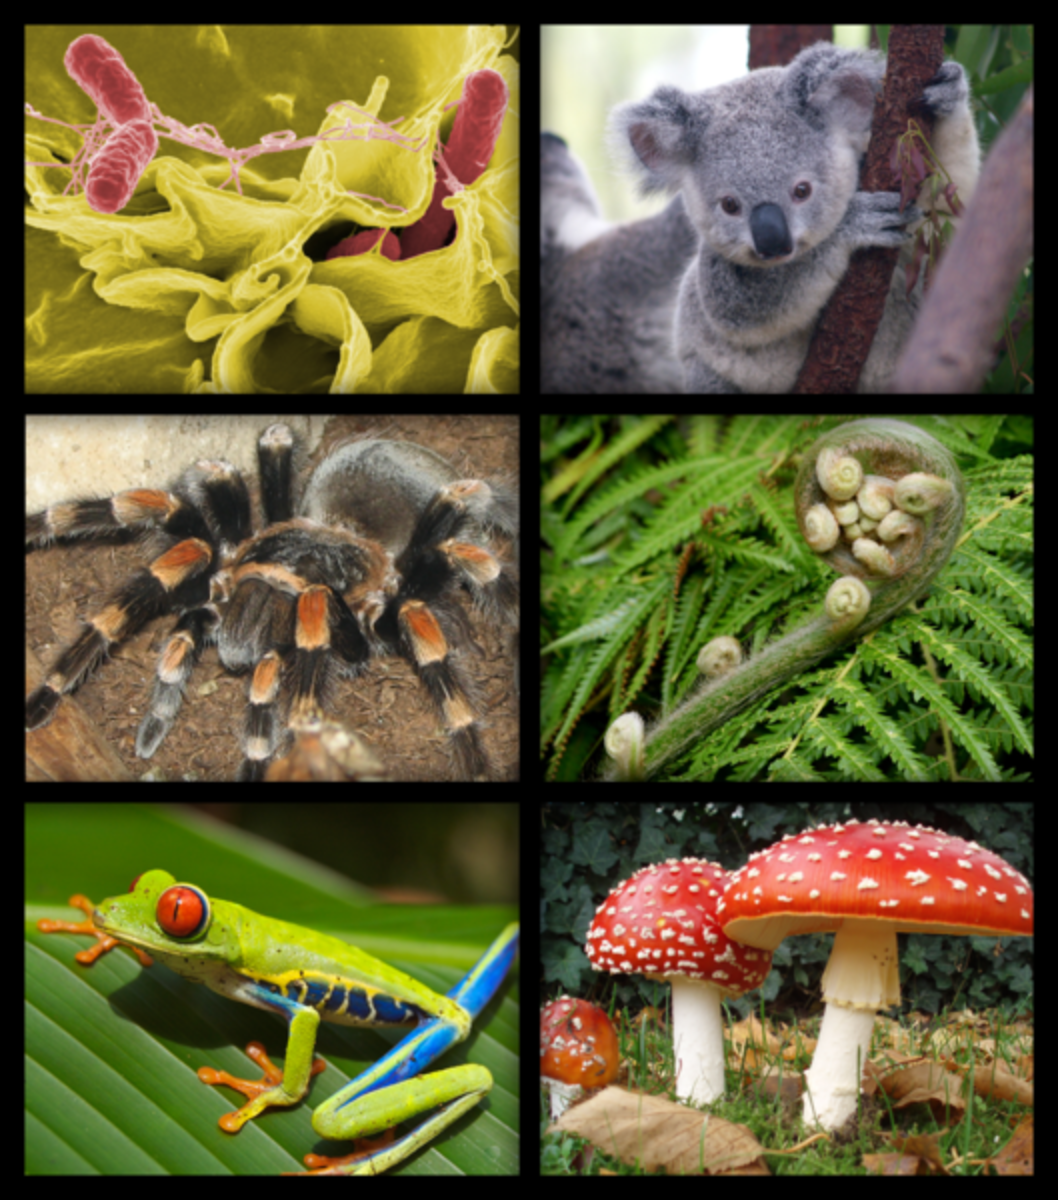 Biology is the study of living things, their composition and their interactions.